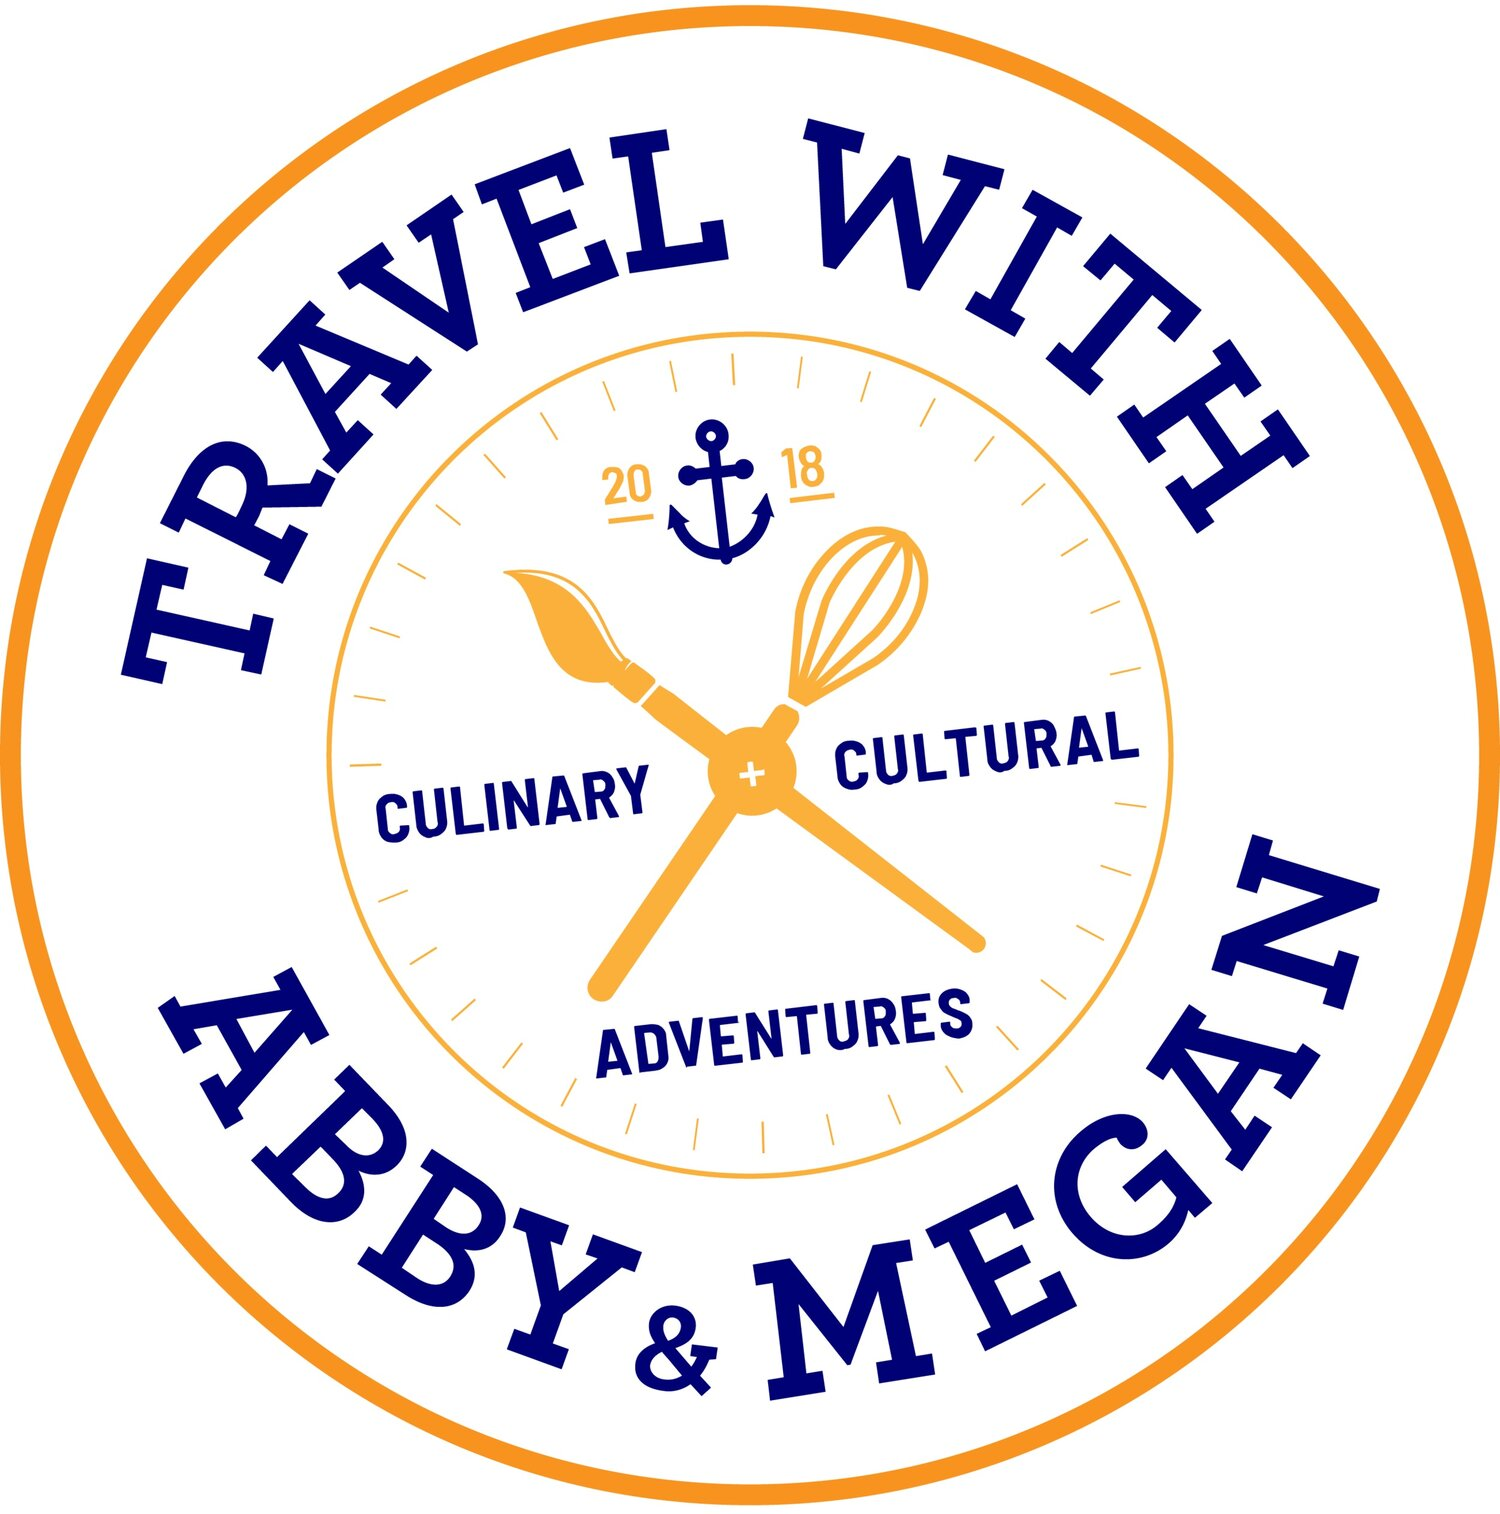 Travel with Abby & Megan